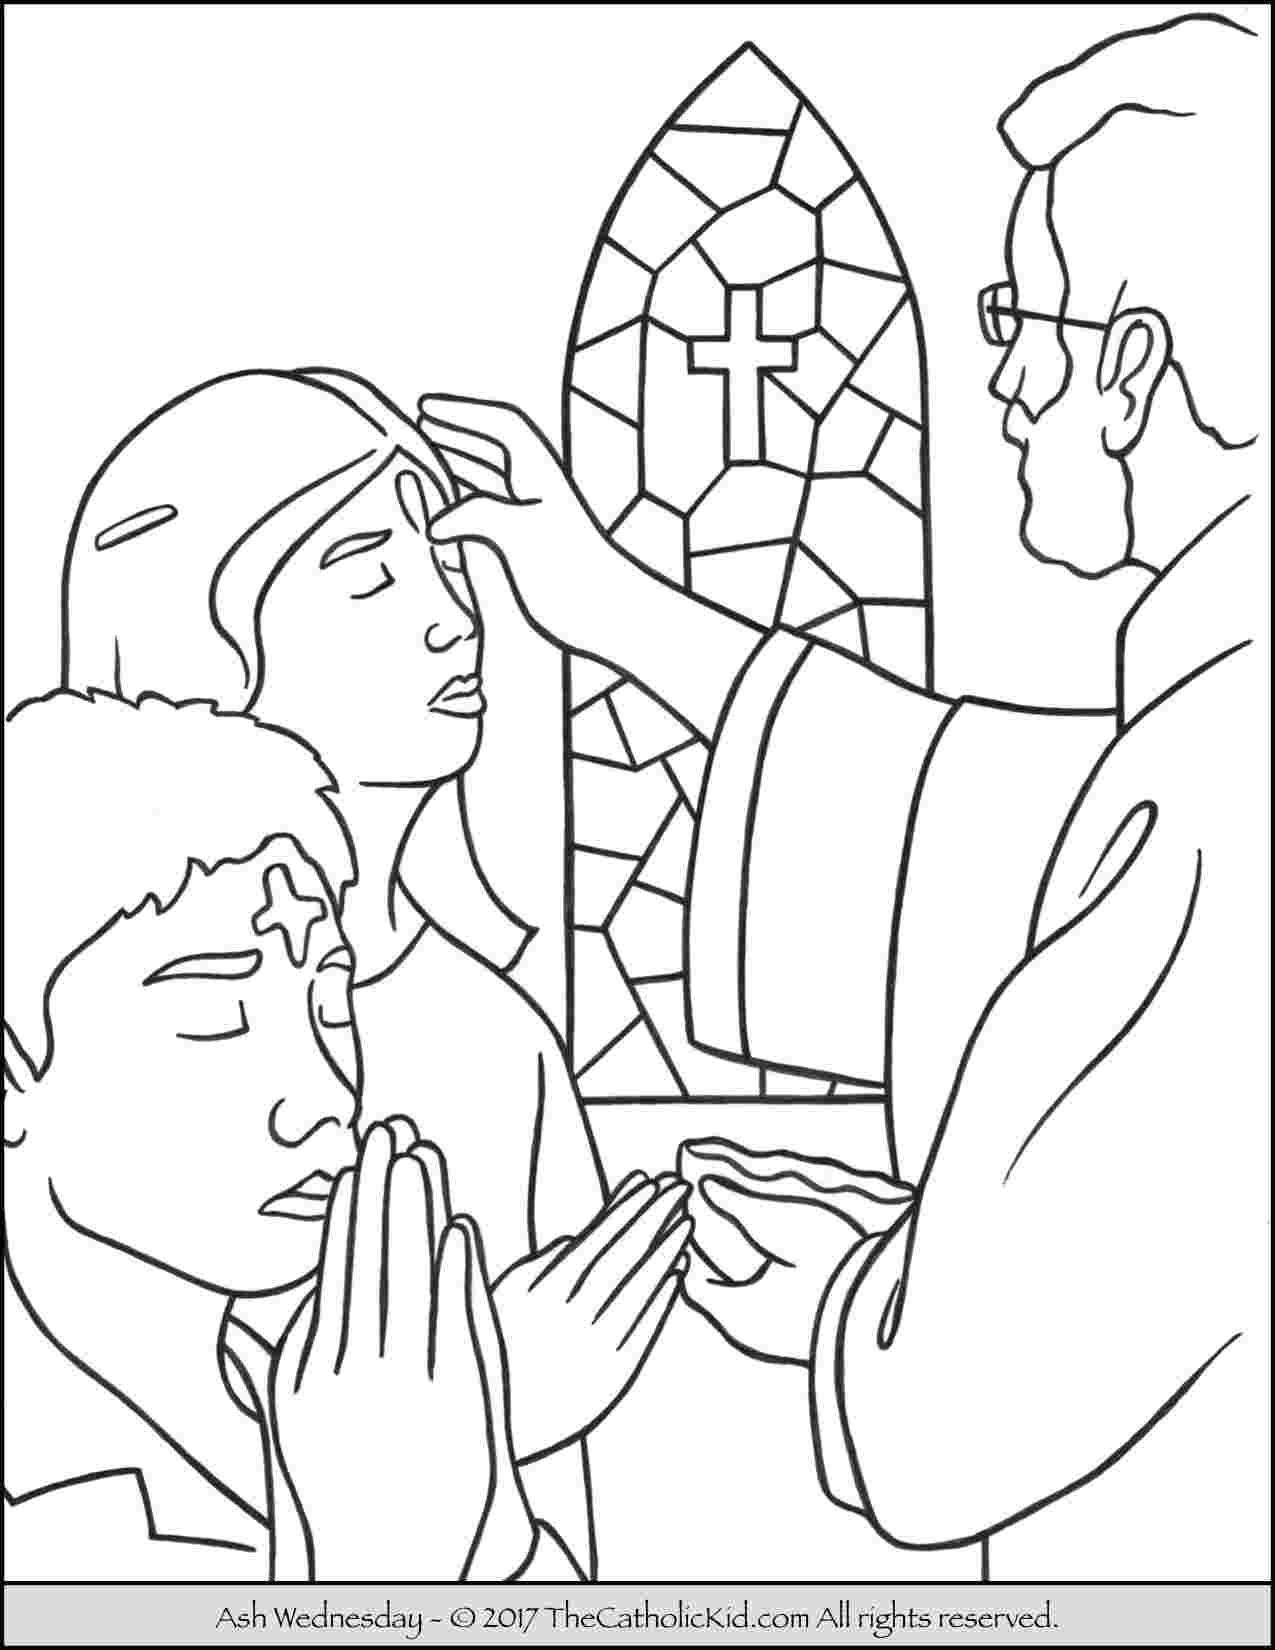 Best Printable Catholic Coloring Pages For Lent